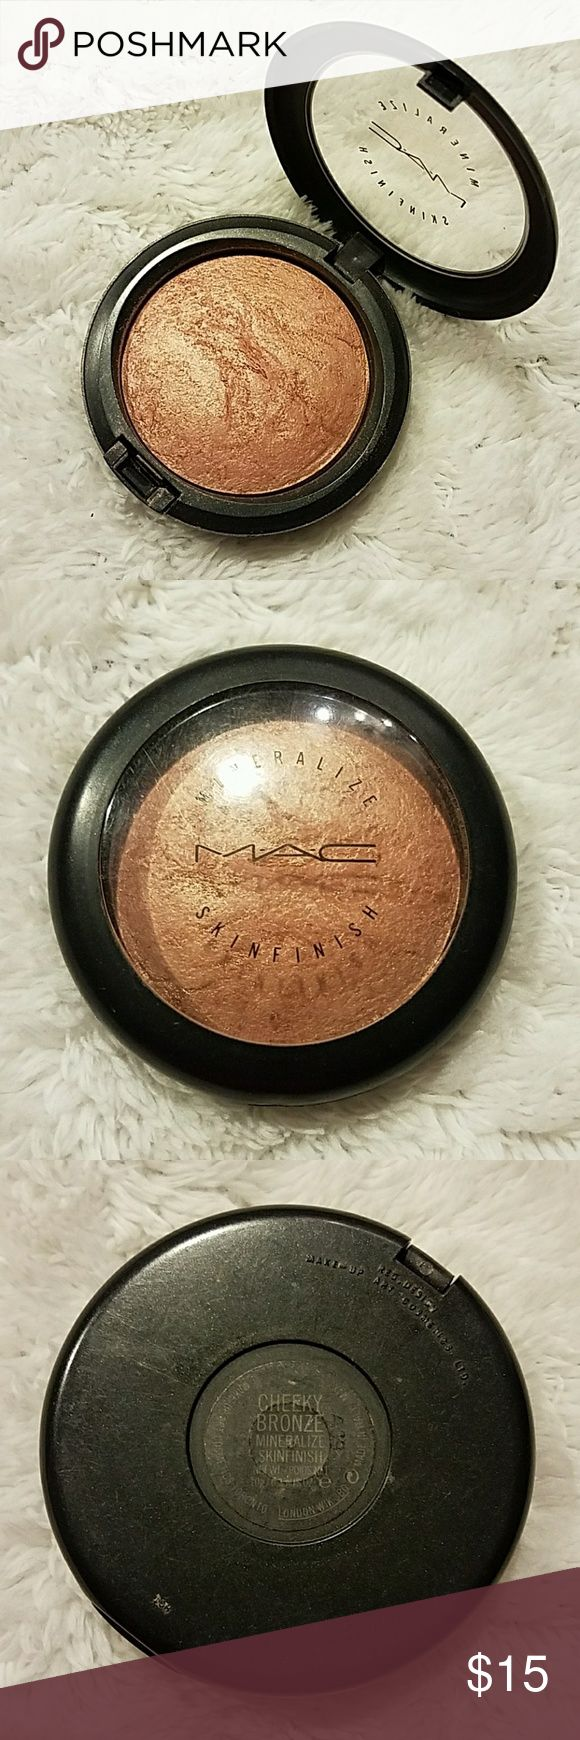 MAC Cheeky Bronze Mineralize Skinfinish Usage as shown in photos MAC Cosmetics Makeup Bronzer